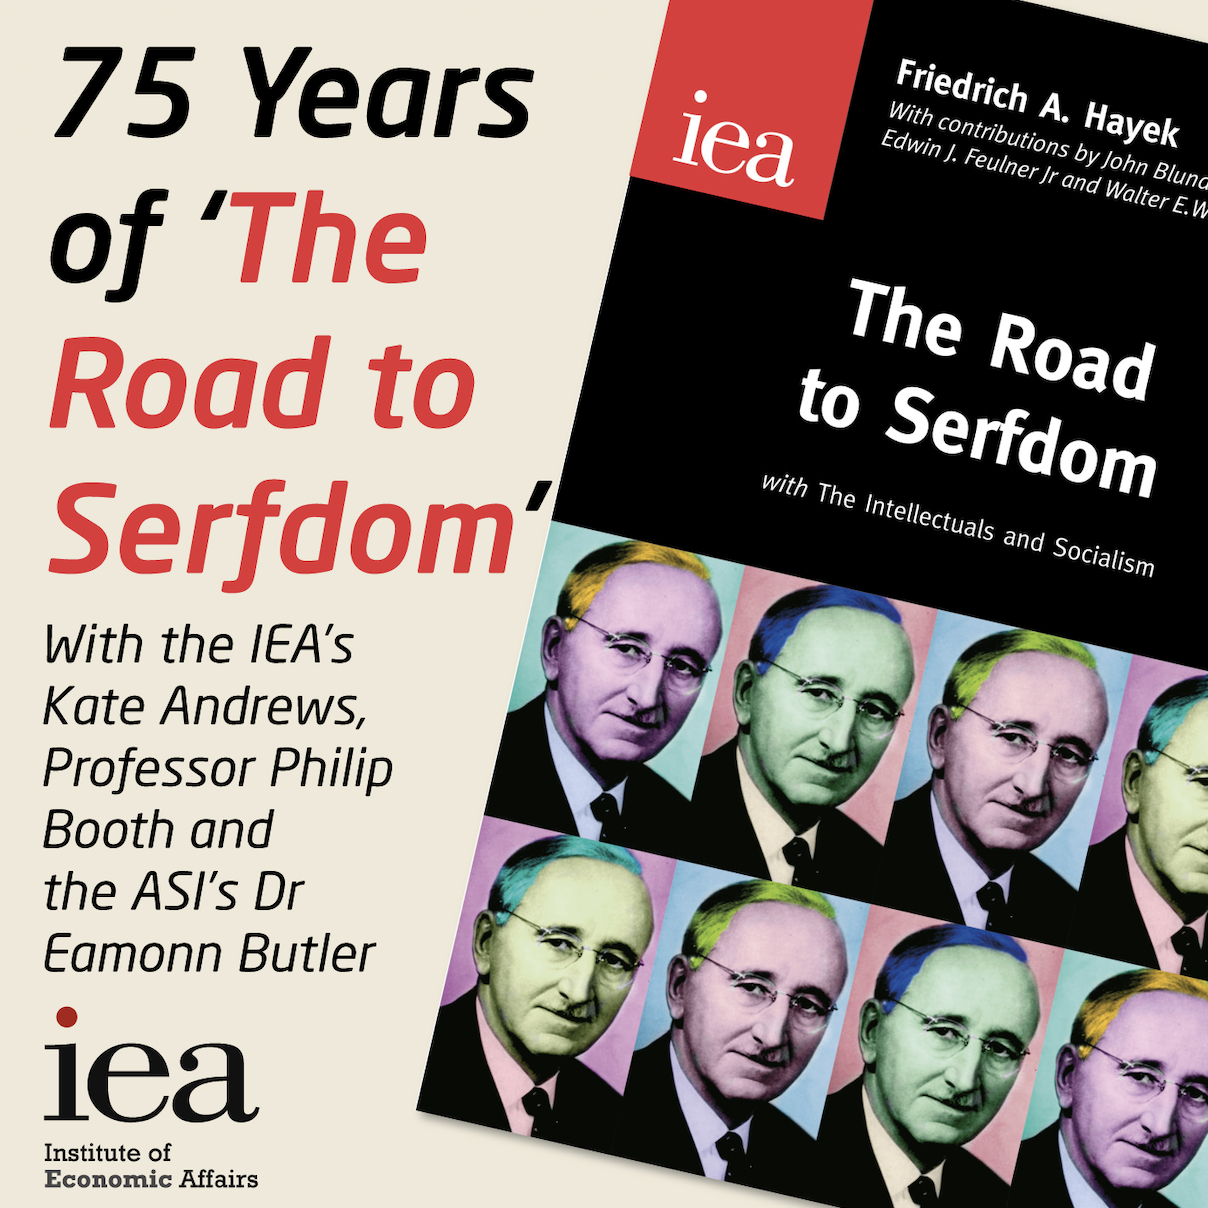 75 years since 'The Road to Serfdom'